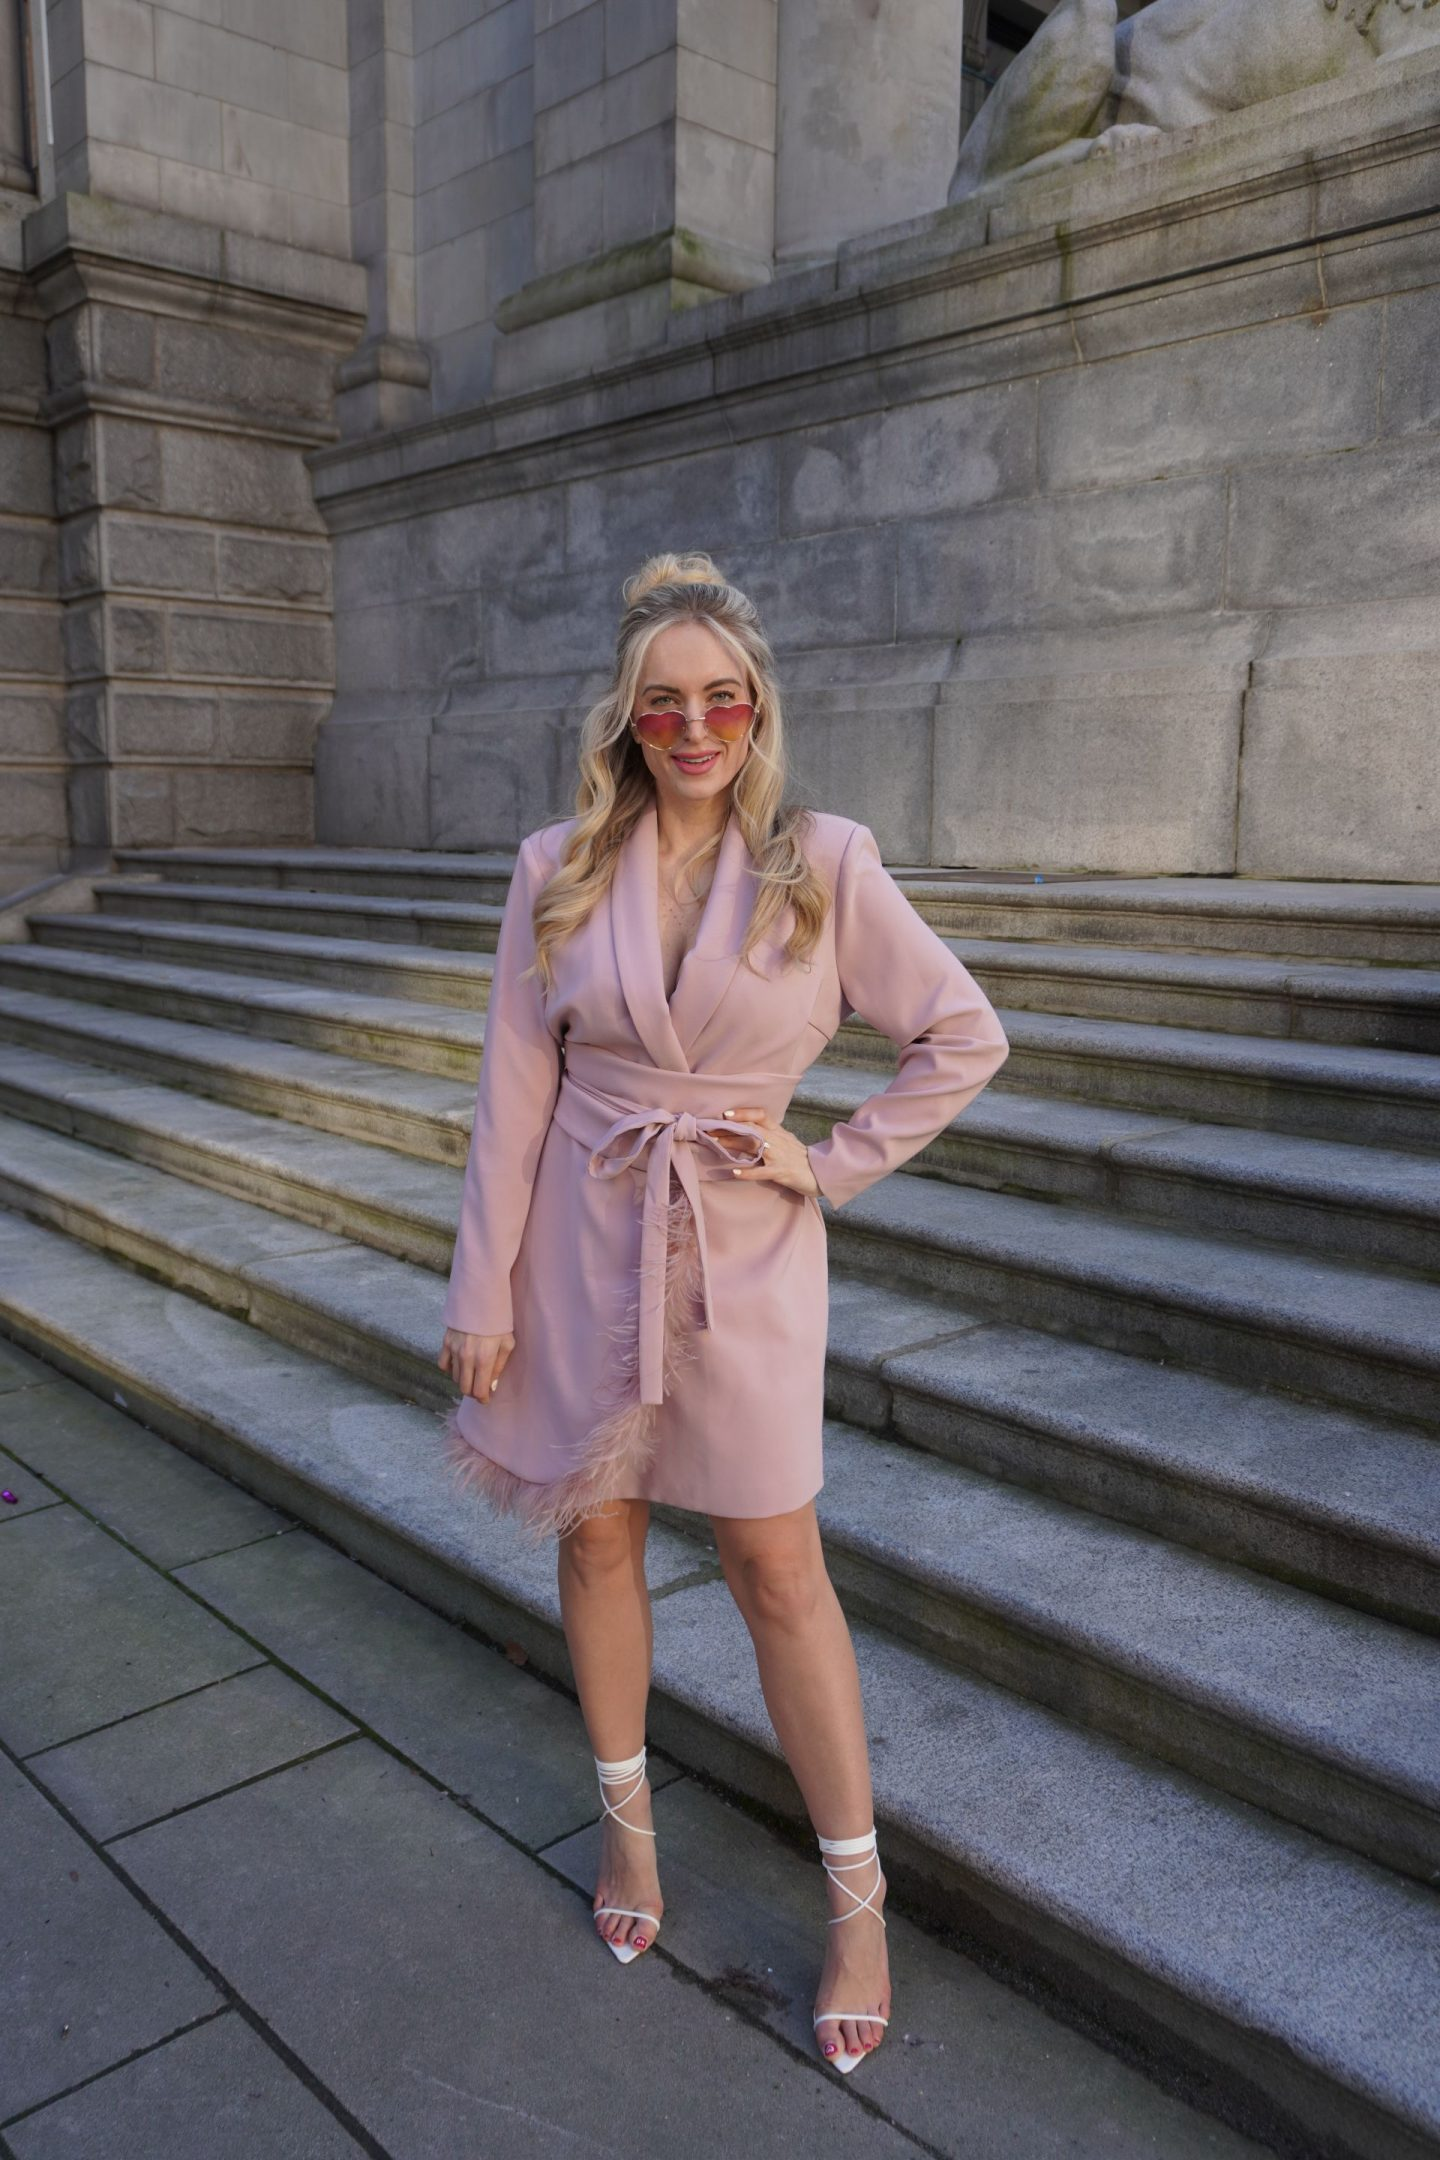 fashion blogger legallee blonde standing wear one of spring's fashion trends - feathers - in a pink blazer dress with feathers